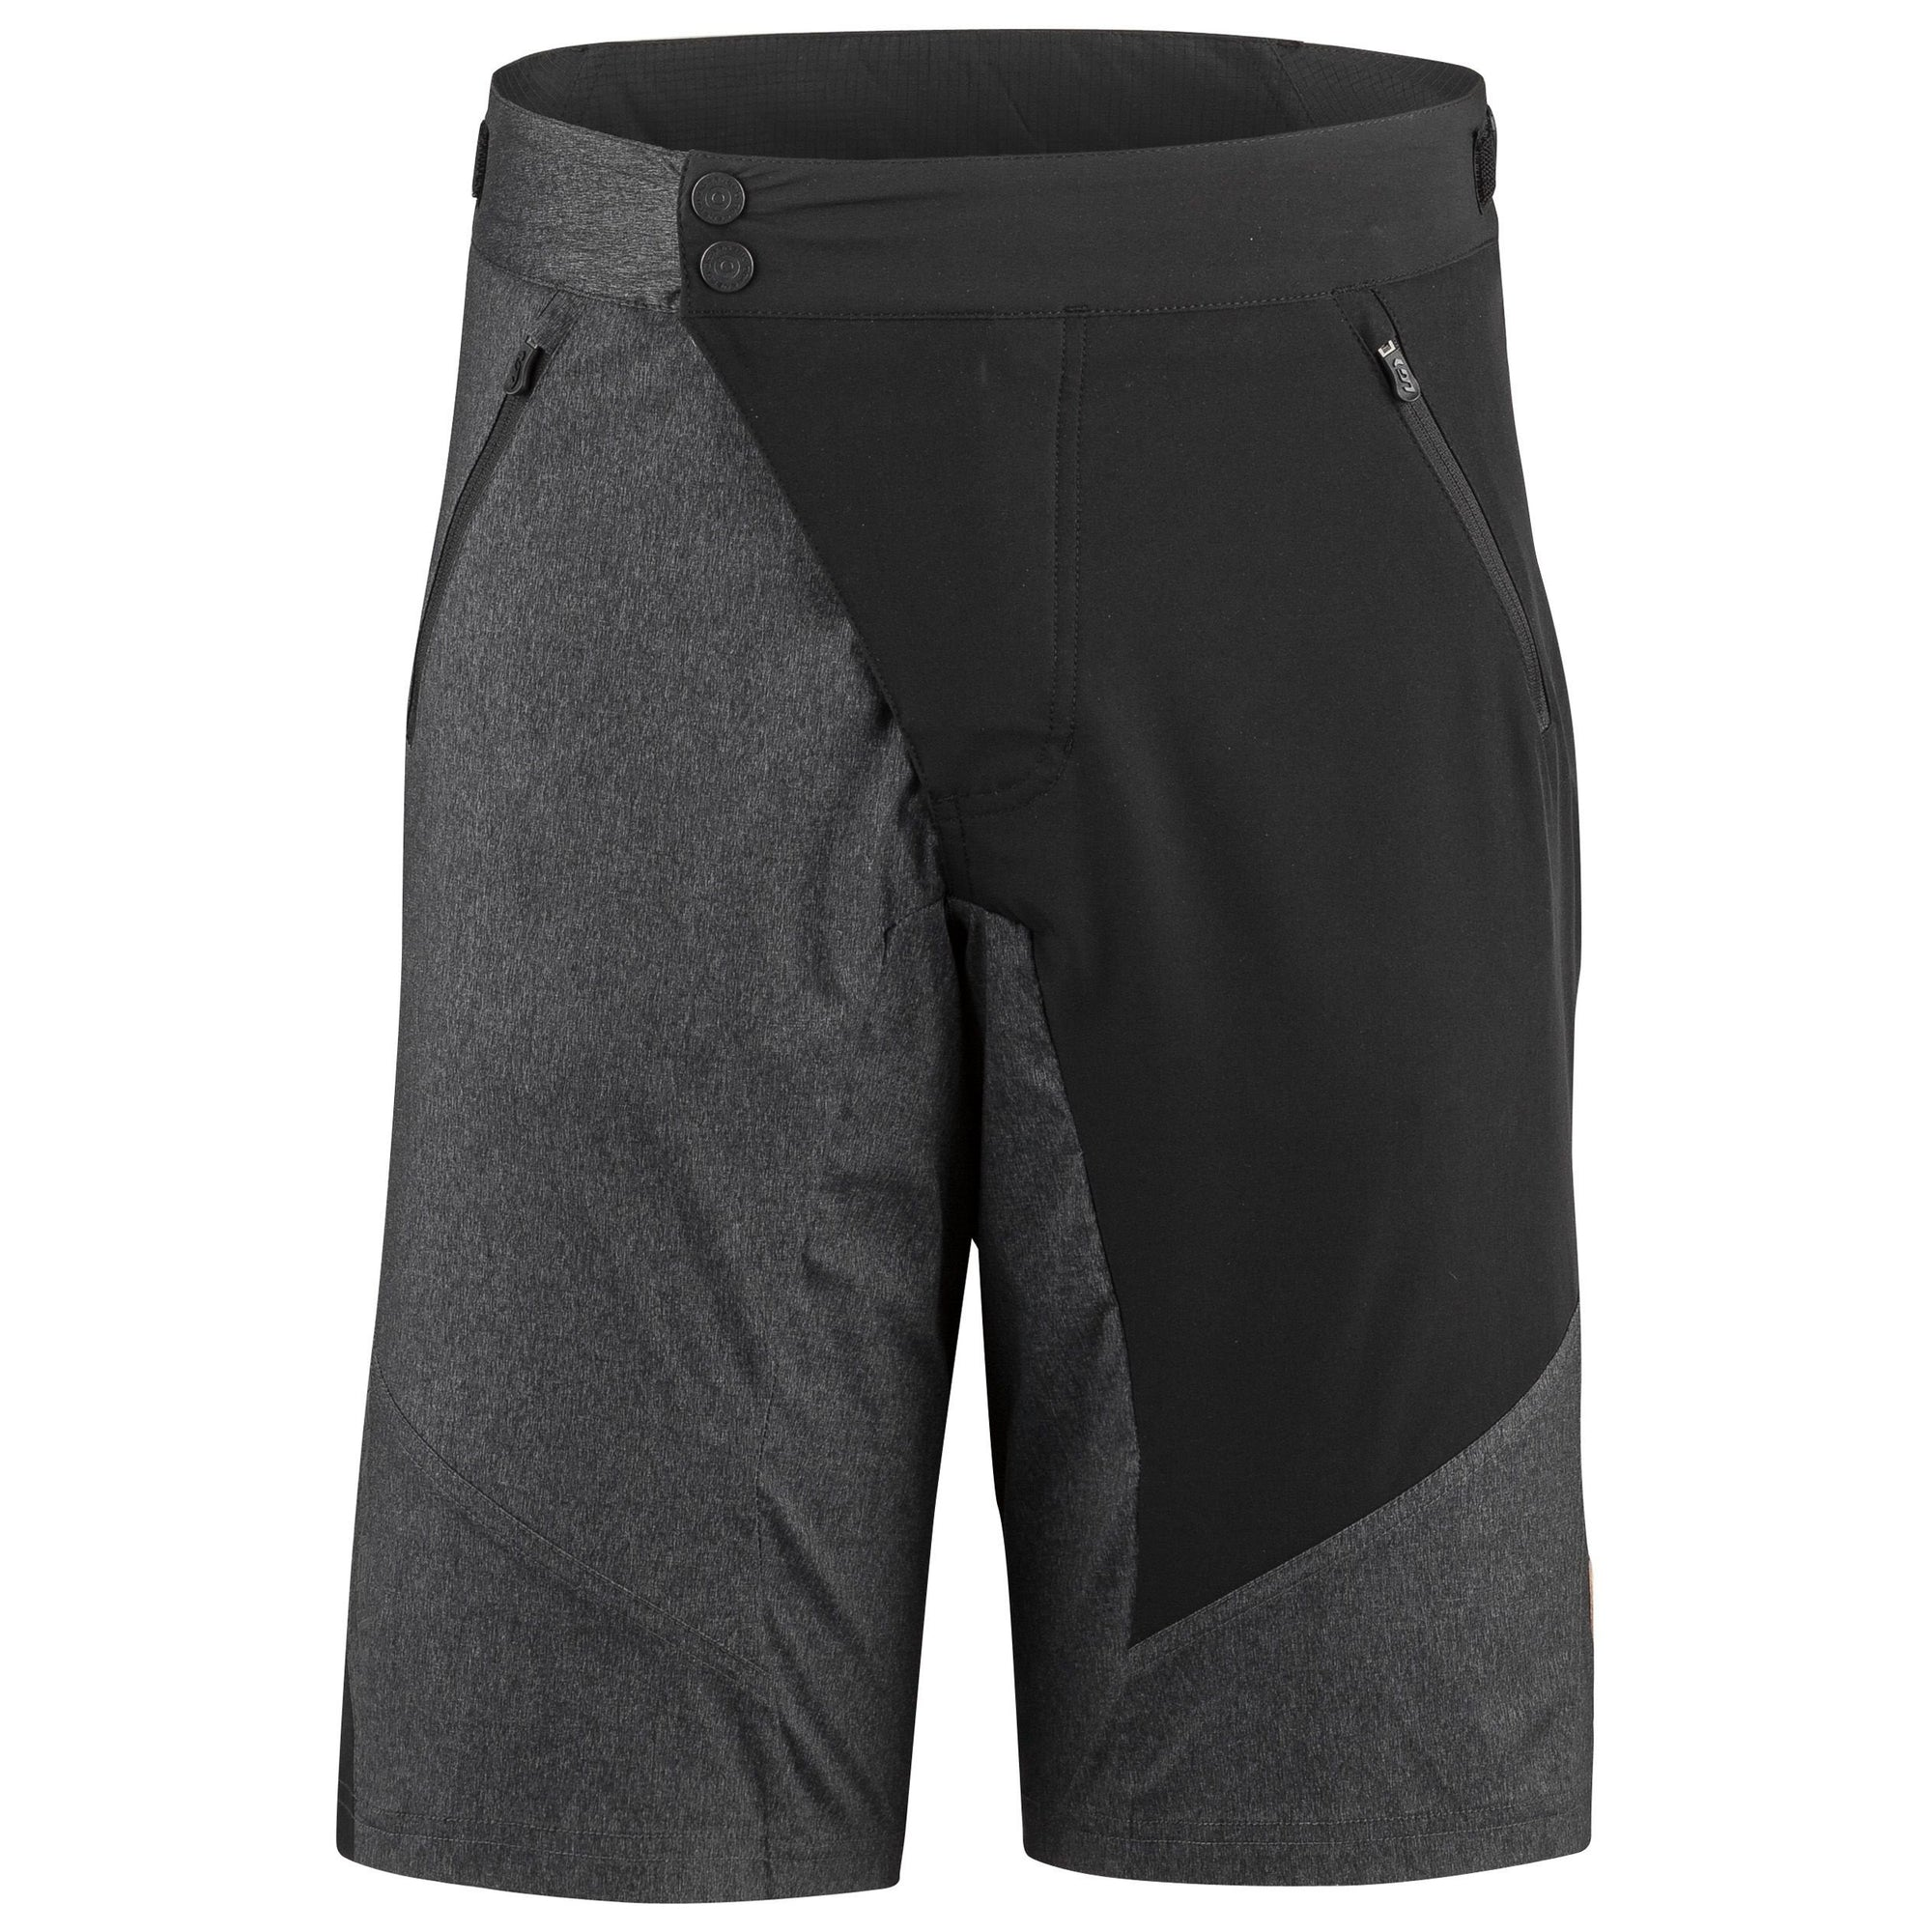 Louis Garneau 2019 Men's Dirt Cycling Shorts